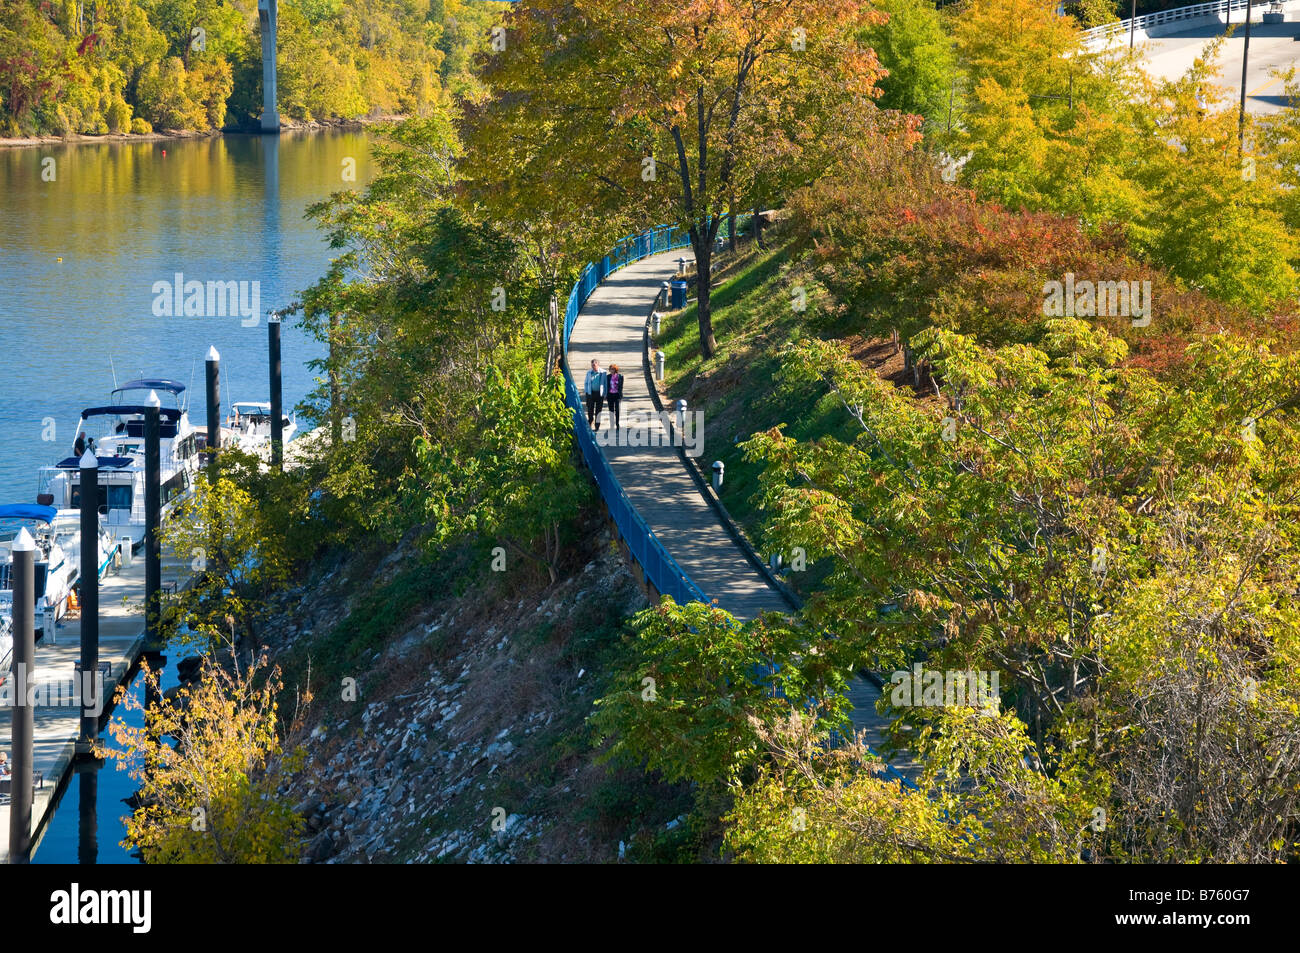 People walking along the Riverwalk beside the Tennessee River in Chattanooga Tennessee - Stock Image